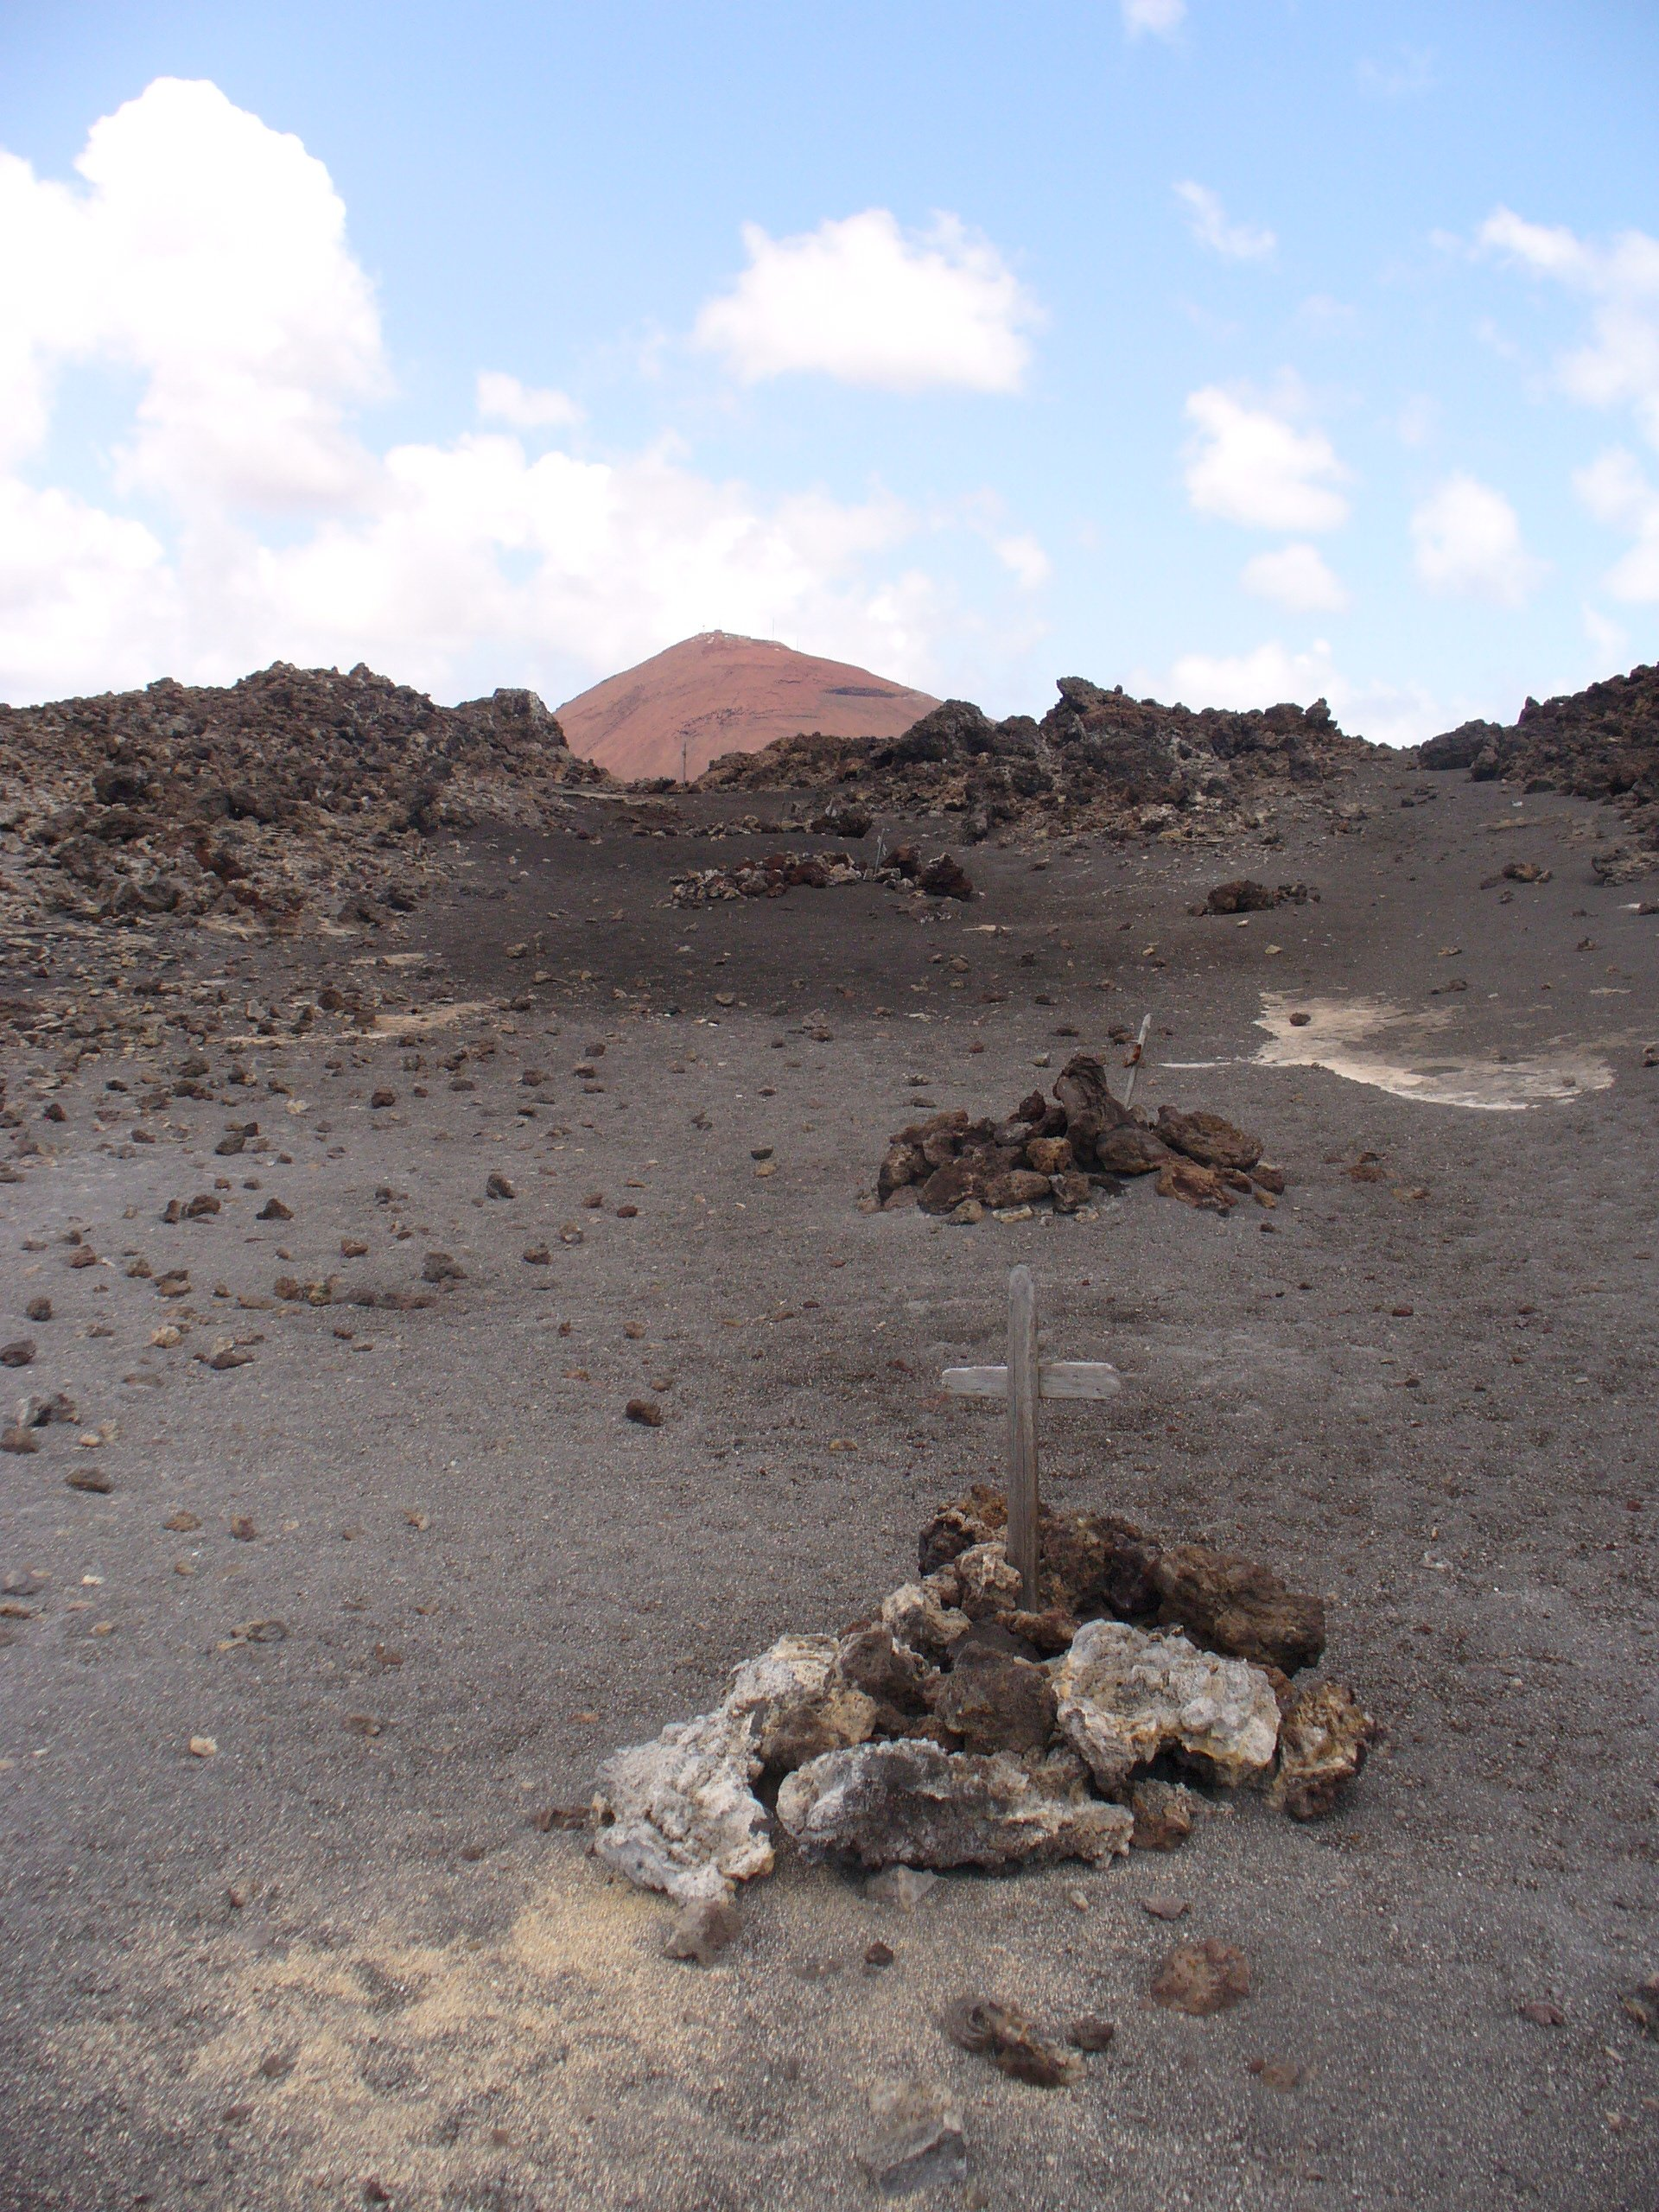 unknown graves amidst the rubble of ascension island